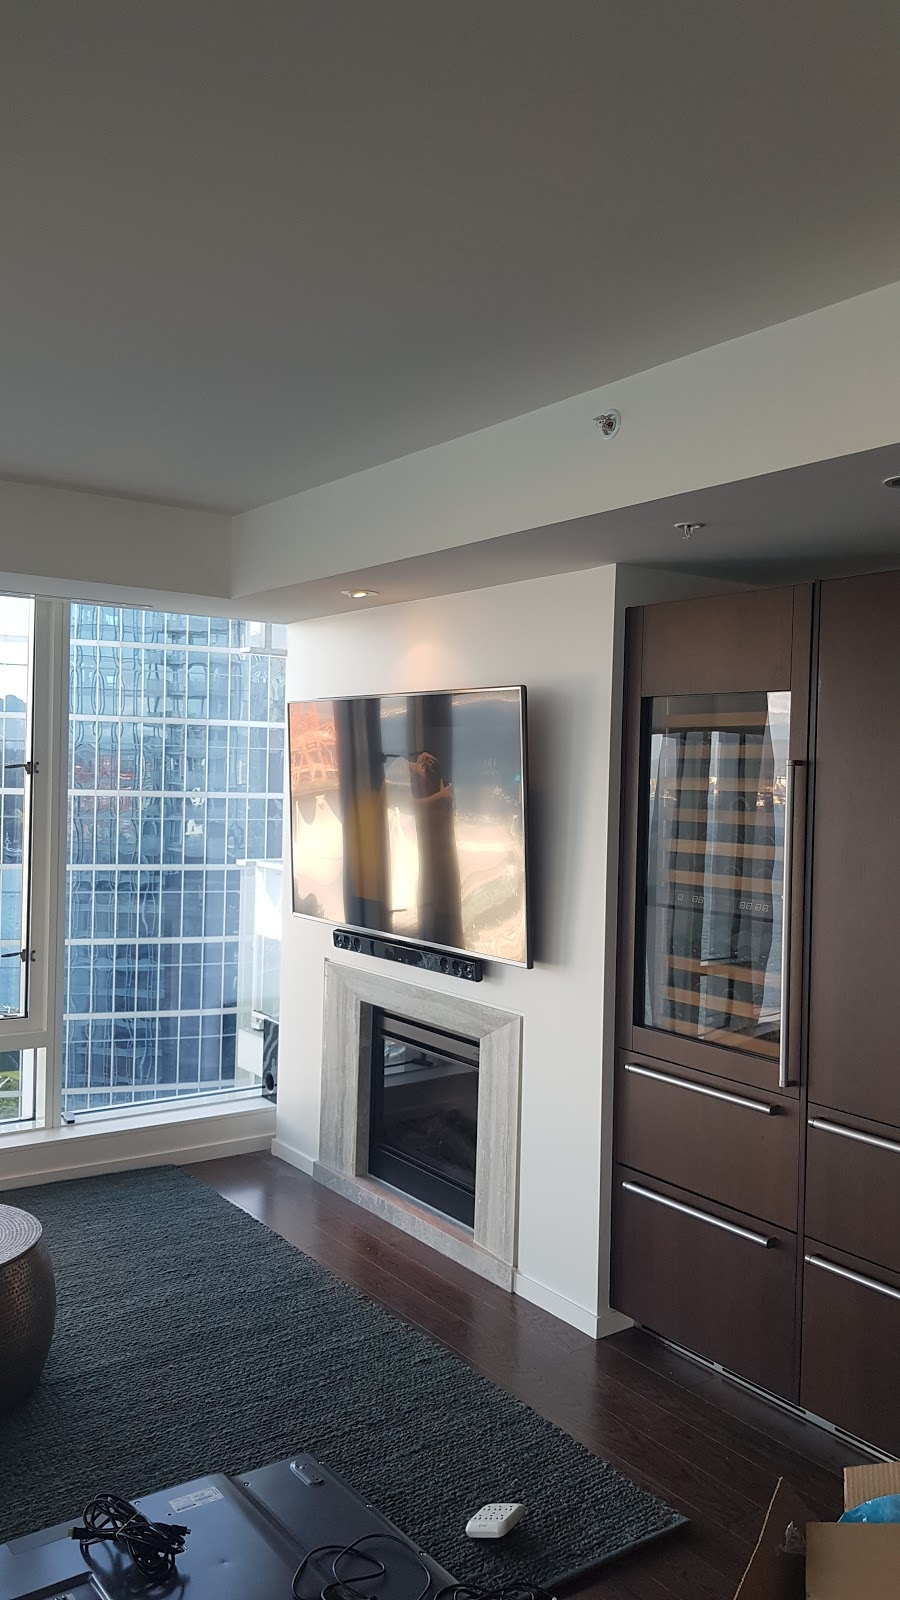 MB Installations   electrician   1288 W Cordova St, Vancouver, BC V6C 3R3, Canada   6043457609 OR +1 604-345-7609